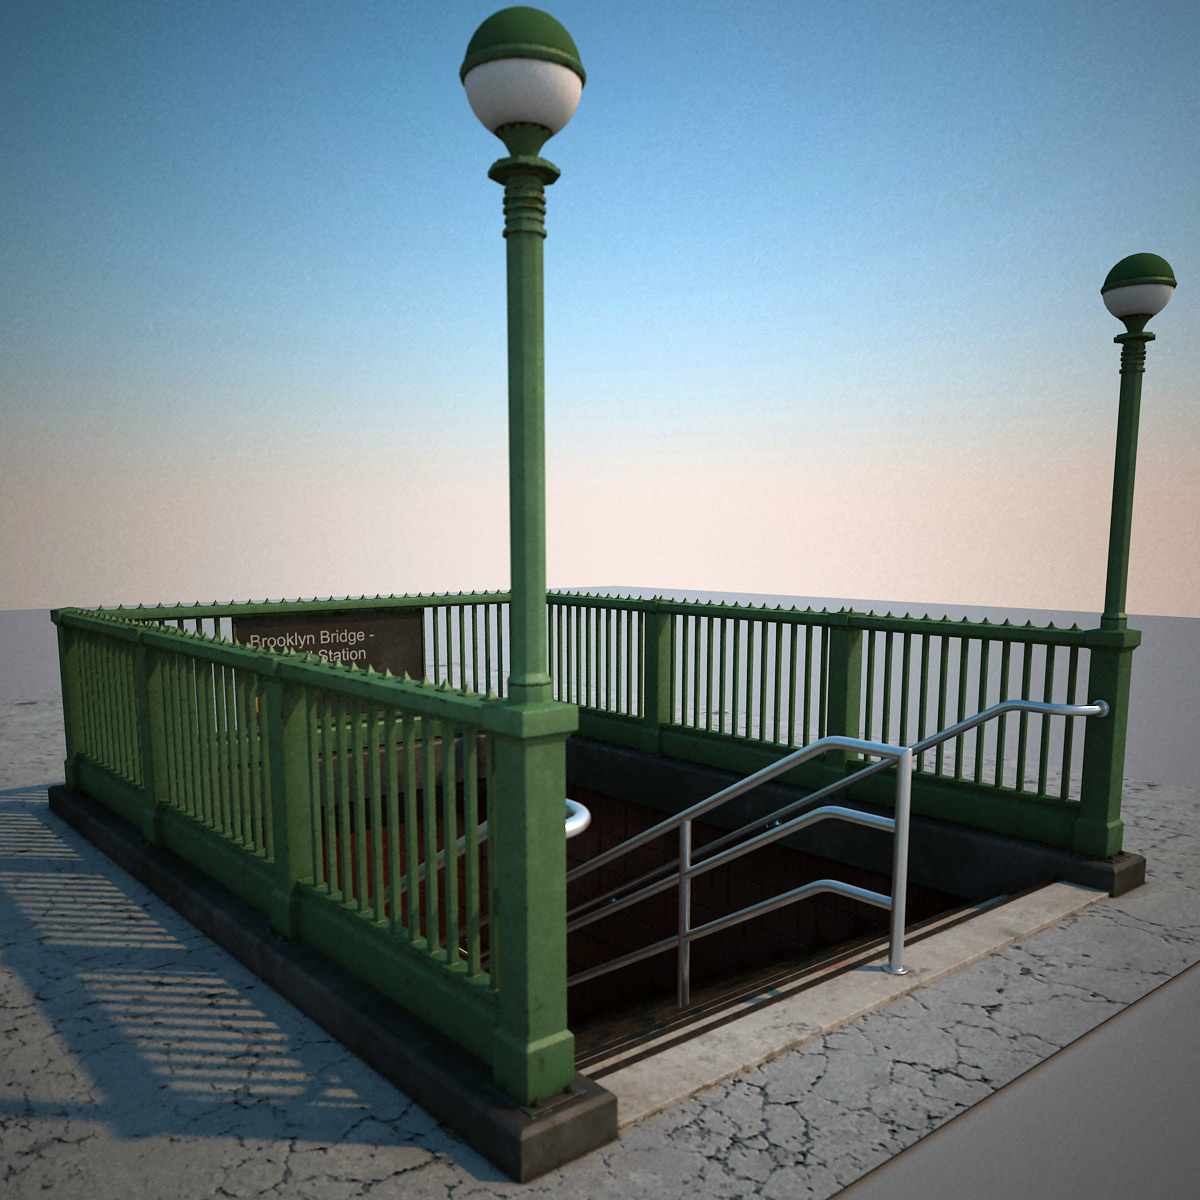 Subway_Entrance_V4_00.jpg